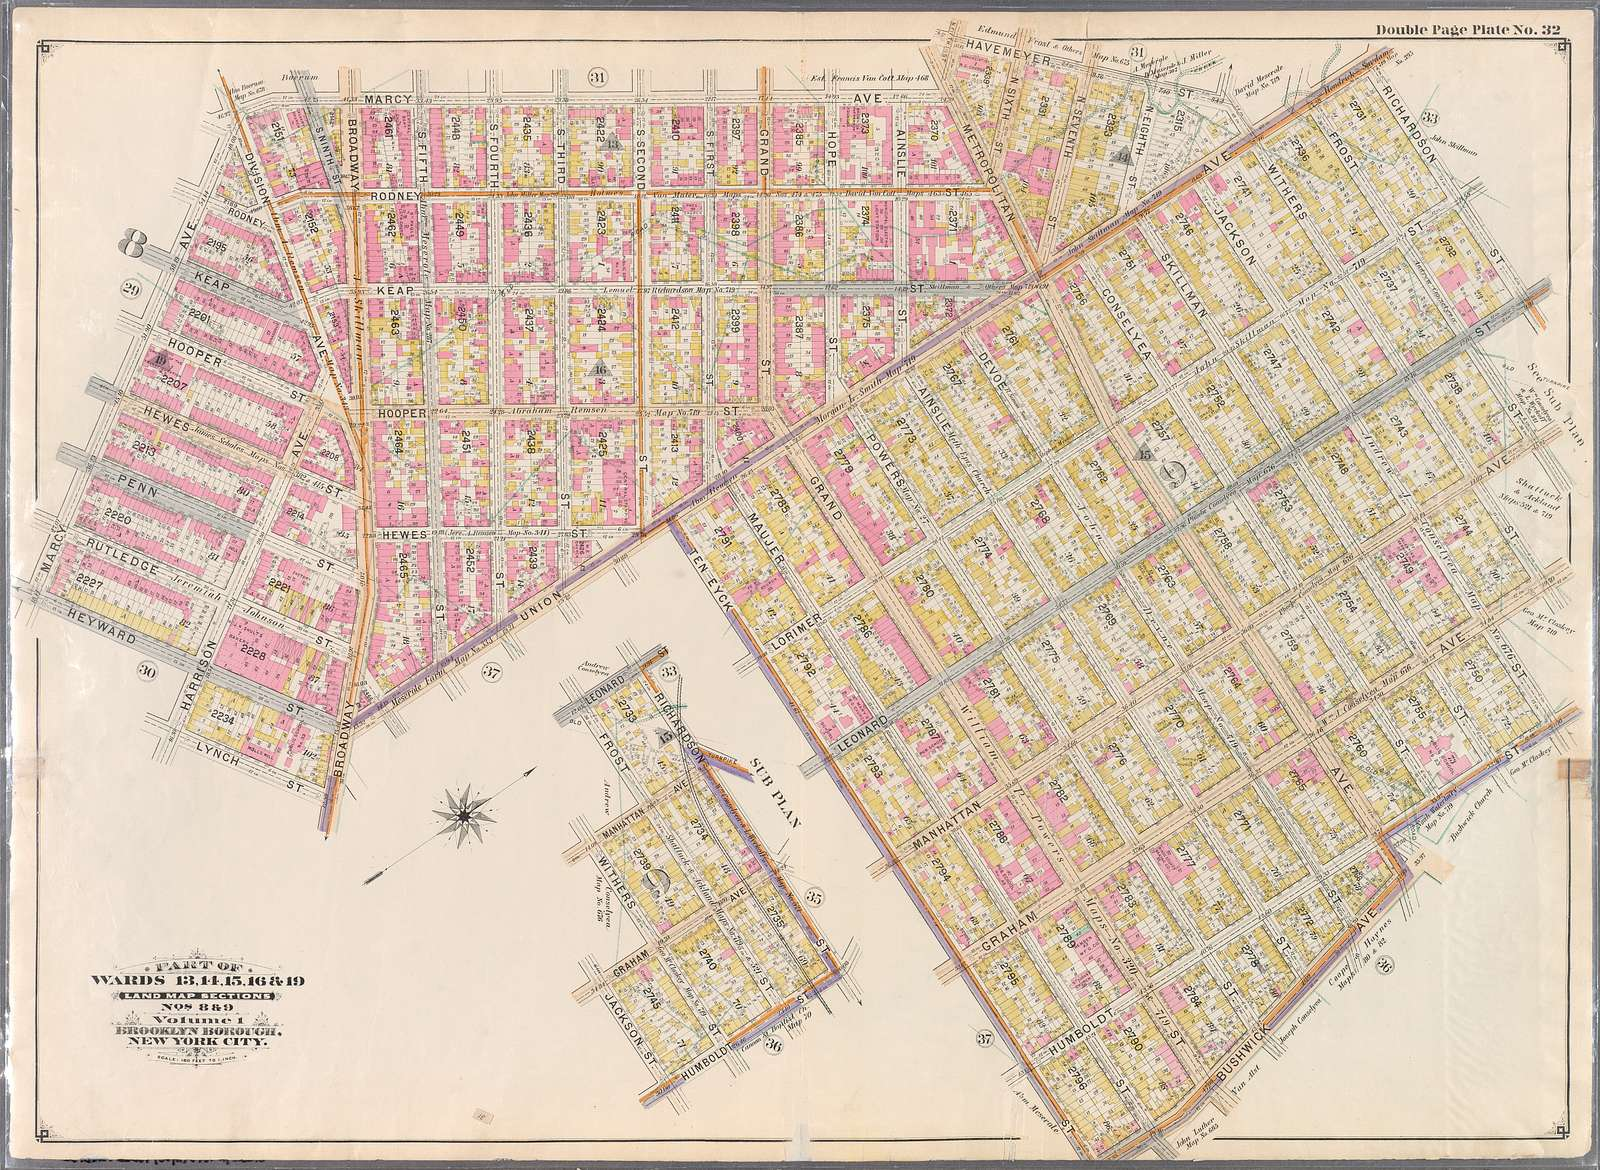 Double Page Plate No. 32: [Bounded by Marcy Ave., Metropolitan Ave., N. Fifth St., Havemeyer St., Withers St., Union Ave., Richardson St., Leonard St., Frost St., Manhattan Ave., Withers St., Graham Ave., Jackson St., Humboldt St., Metropolitan Ave., Bushwick Ave., Ten Eyck St., Union Ave., Broadway, Lynch St., Harrison Ave., and Heyward St.]